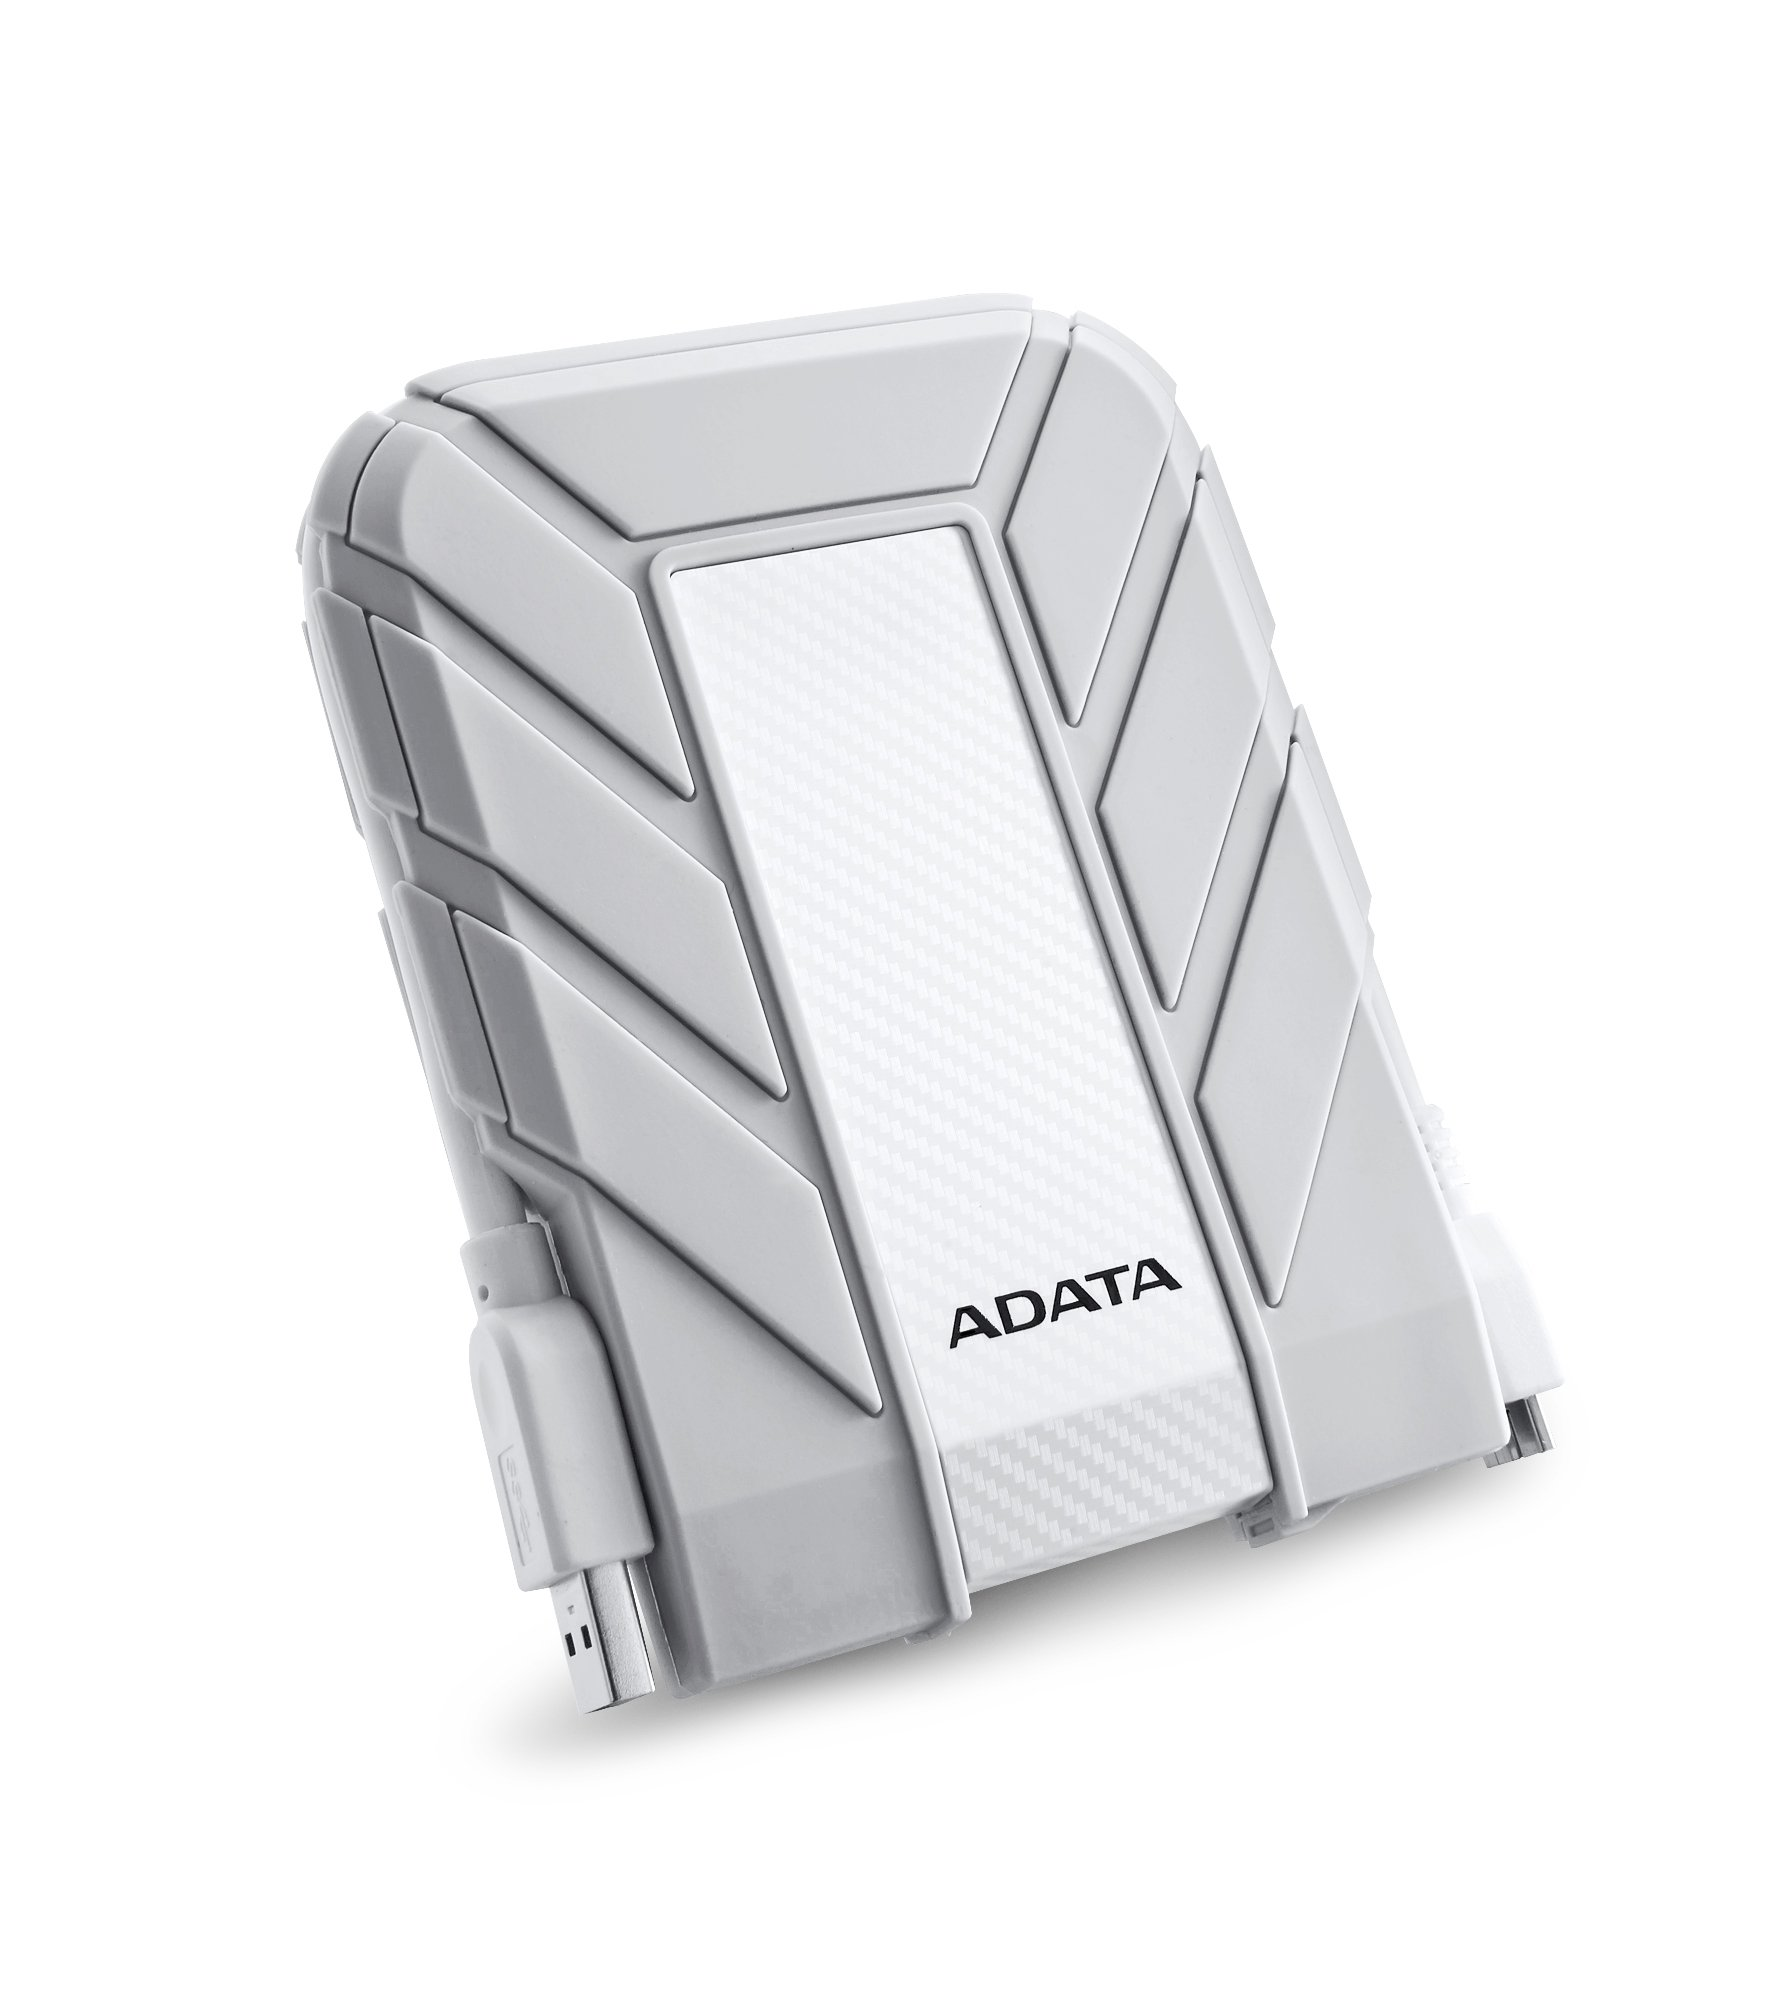 ADATA HD710A 2TB USB 3.0 Waterproof/ Dustproof/ Shock-Resistant Exlusive for Mac External Hard Drive, White (AHD710A-2TU3-CWH) by ADATA (Image #2)